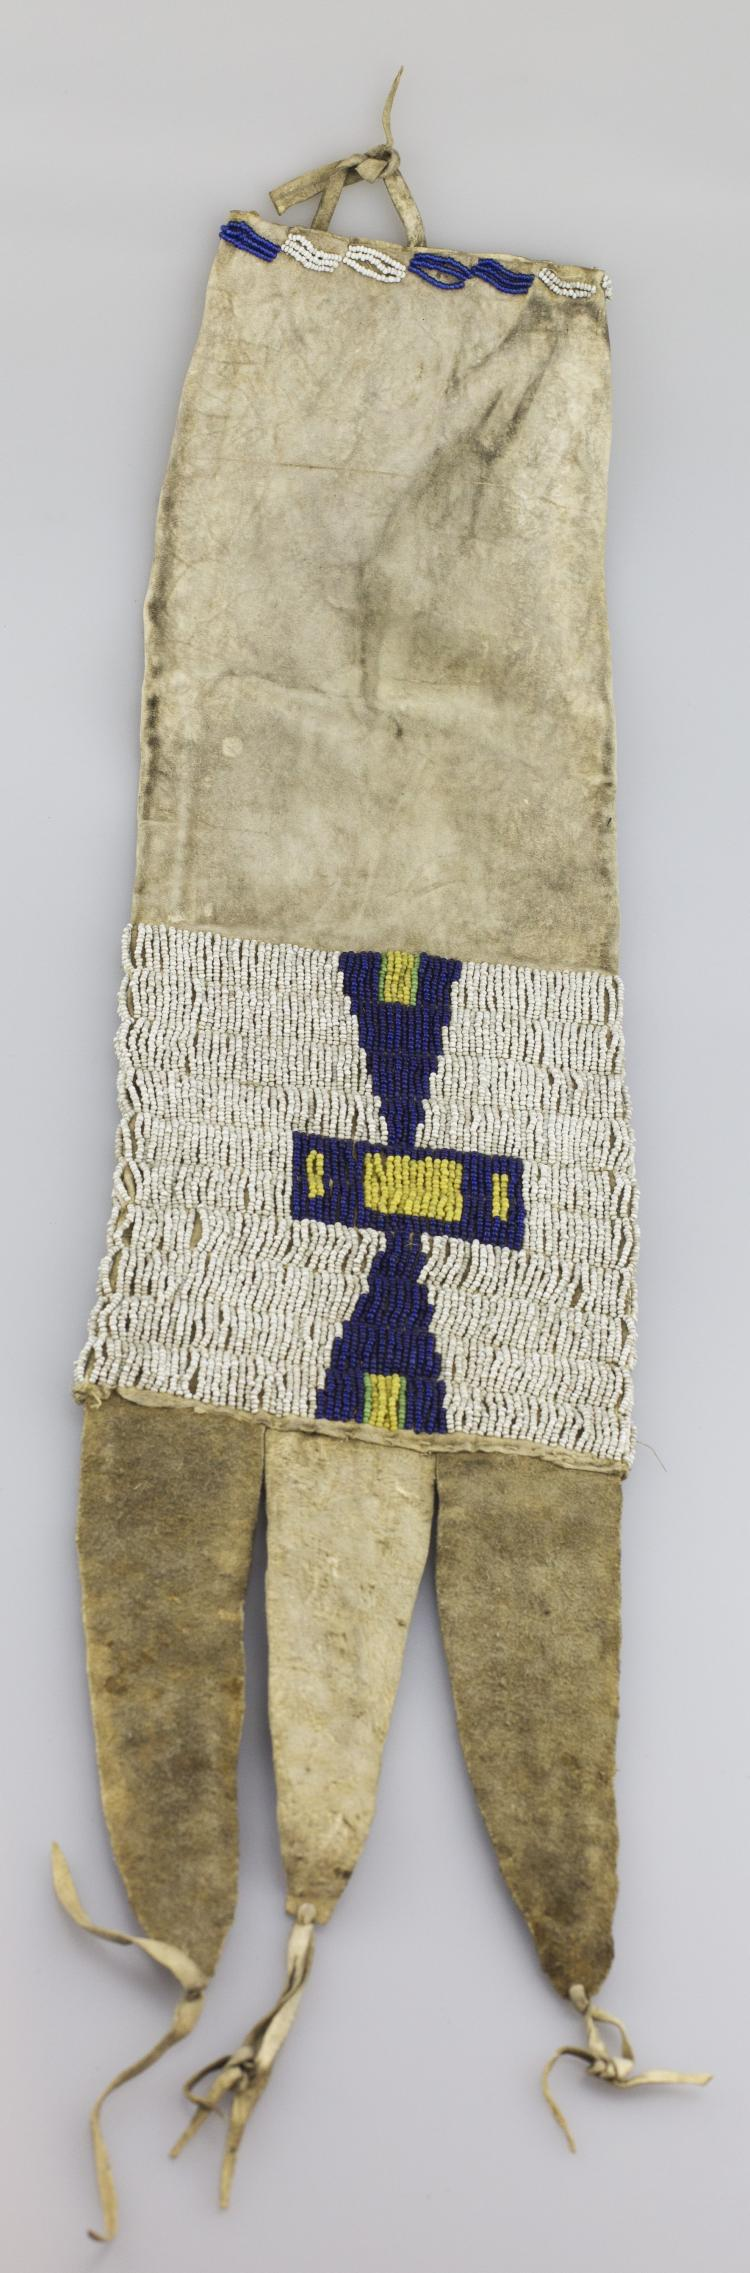 RARE SIOUX THREE LEGGED BEADED TOBACCO BAG -  APPROX. OVERALL LENGHT 23 INCHES - PRE  AUCTION ESTIMATE $3,000 - $4,000